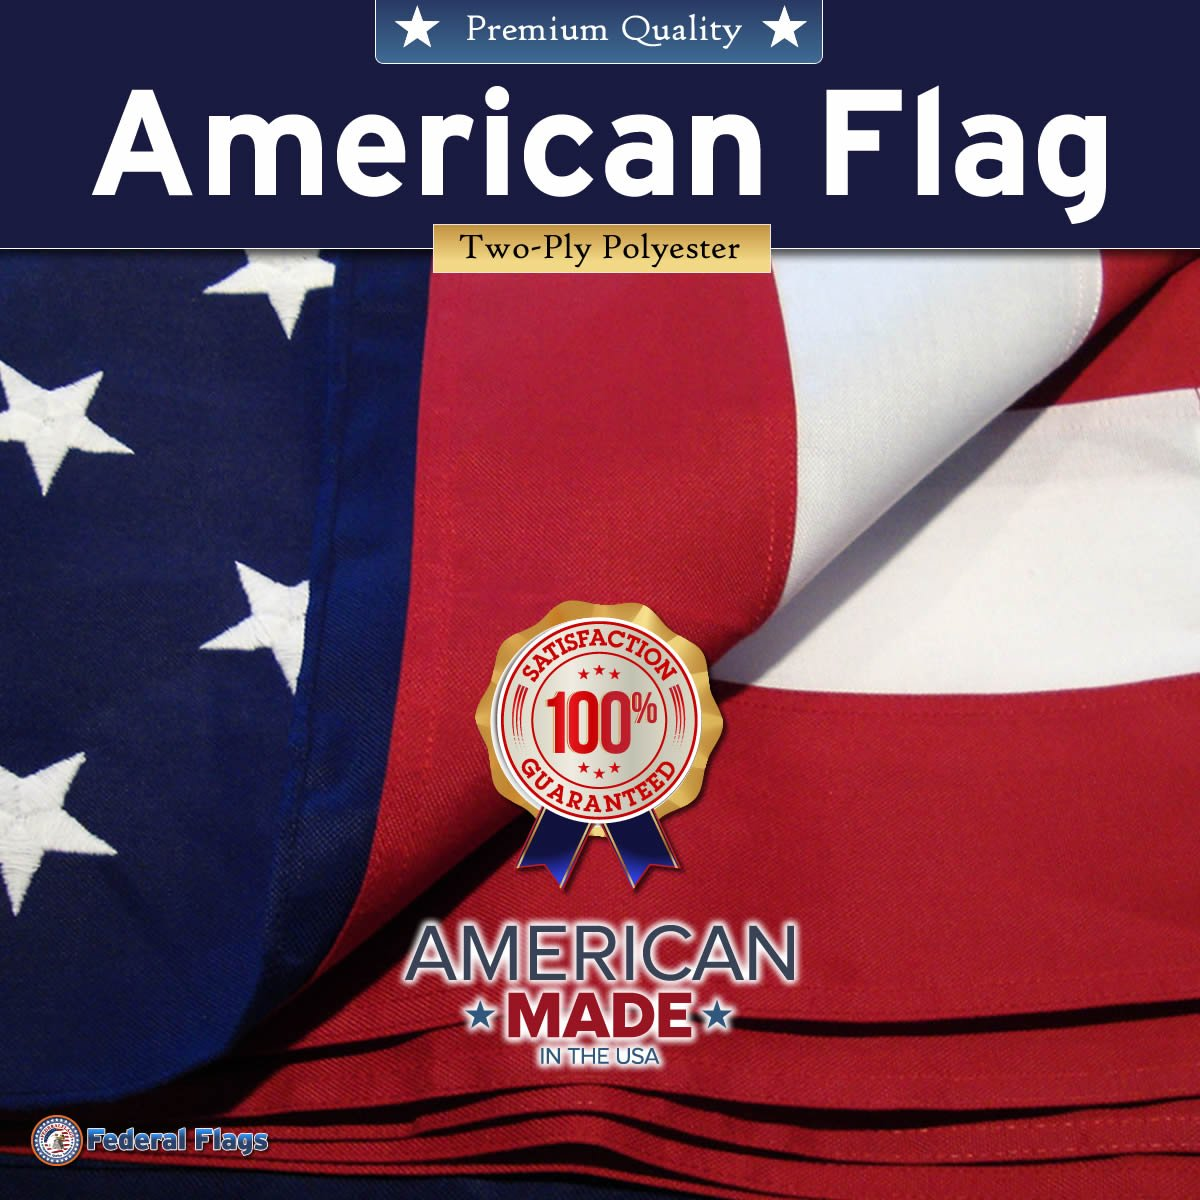 10x15ft Super-Duty American Flag / US Flag by Federal Flags - - 2-ply Heavy Outdoor Polyester - Fully Sewn Stripes, Embroidered Stars - Built For The Toughest Conditions - Made in the USA